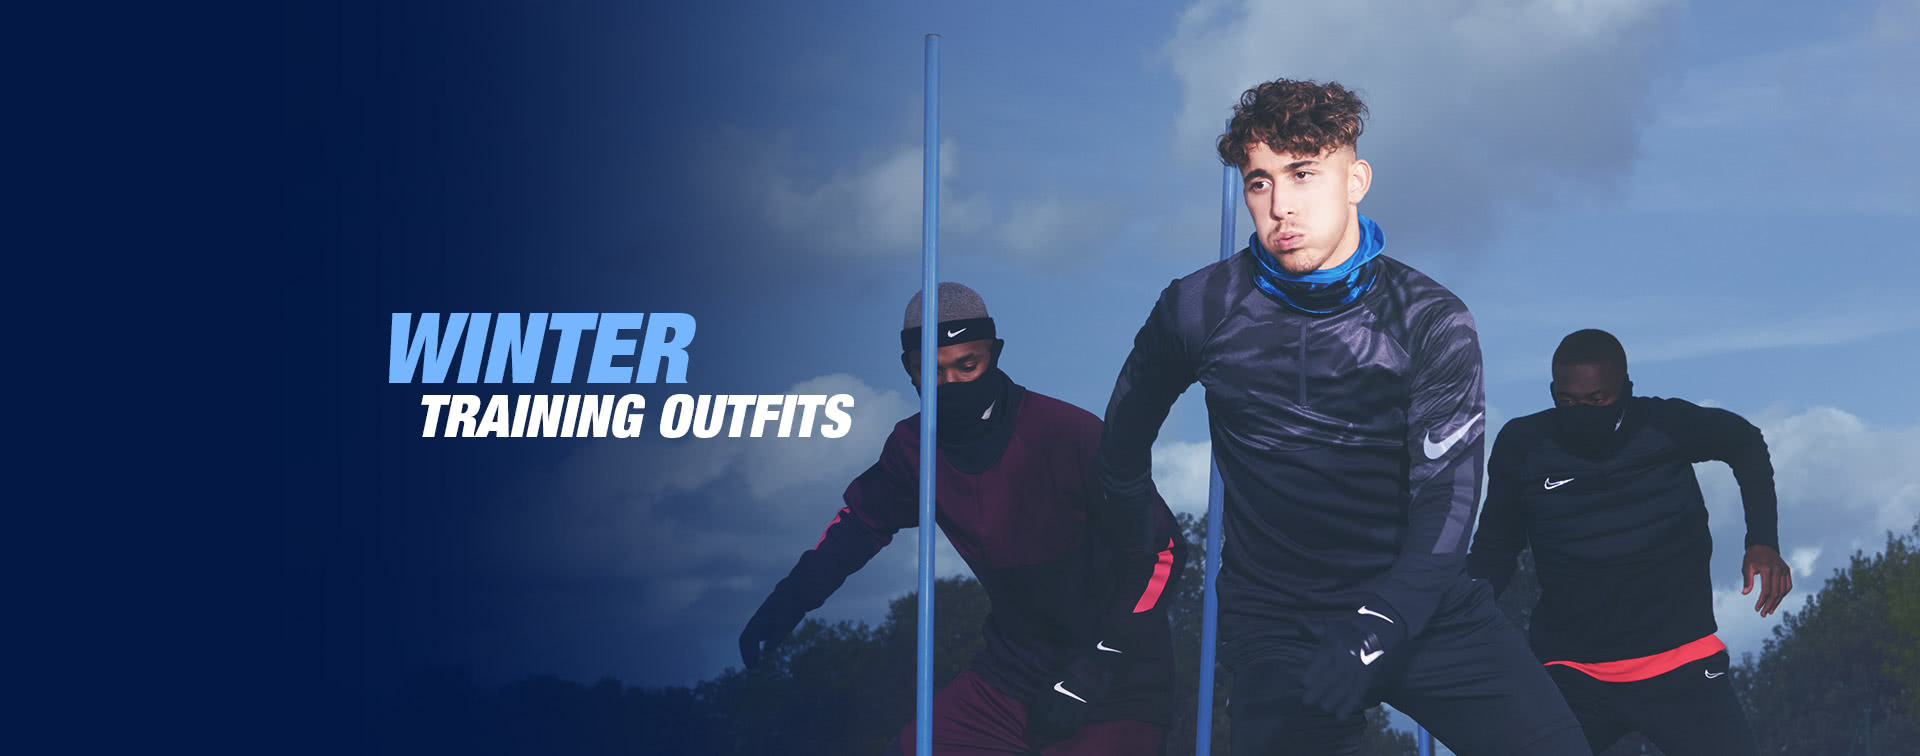 Winter training outfits